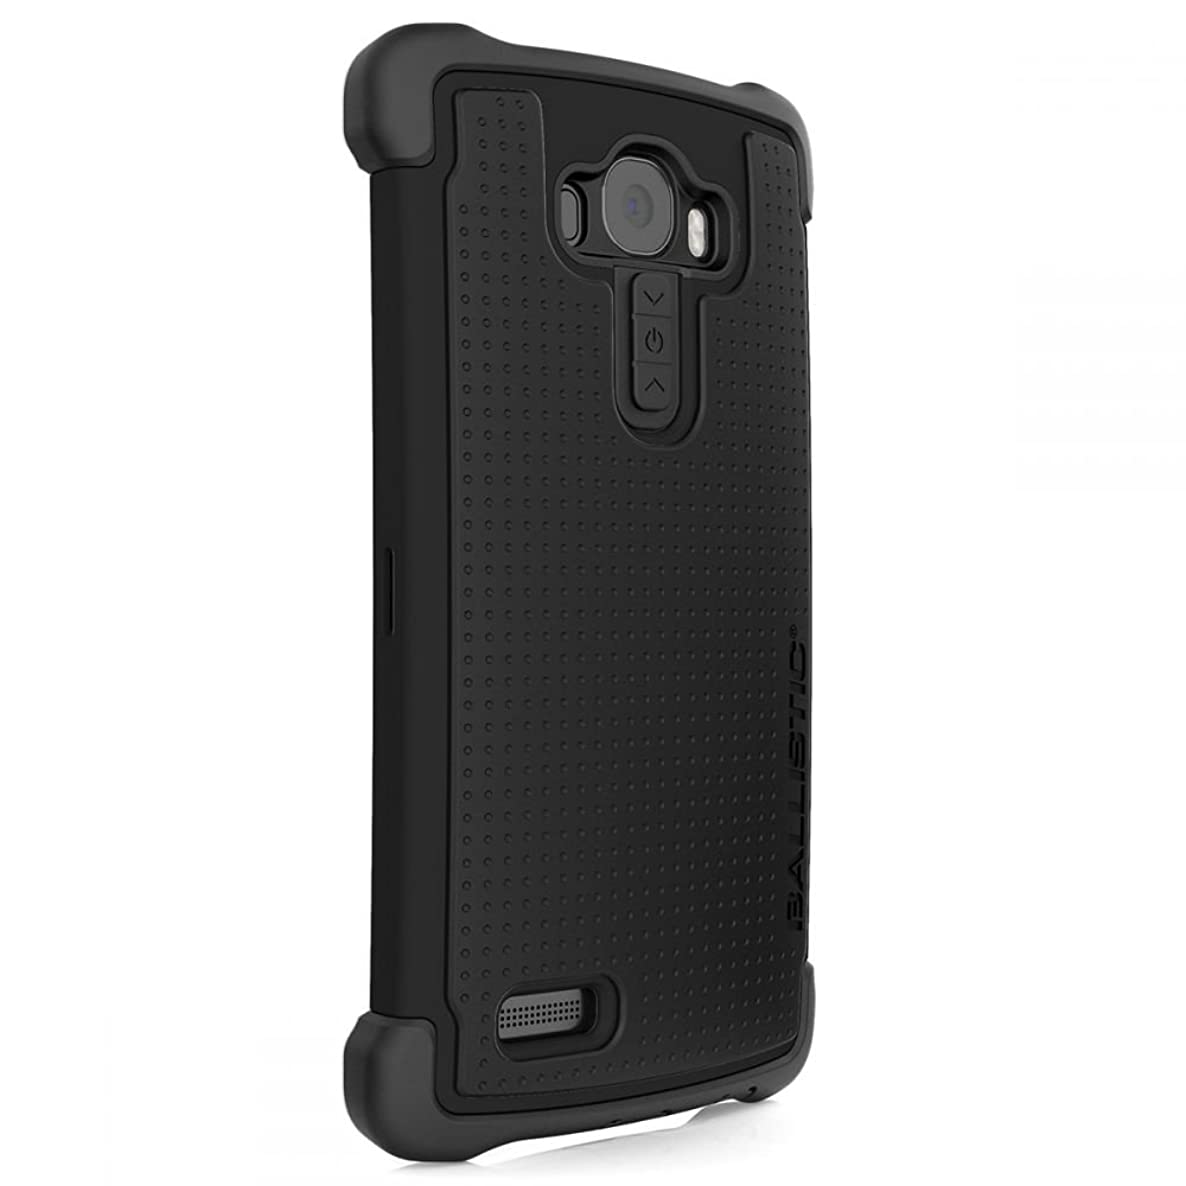 Ballistic, LG G4 Case [Tough Jacket Maxx] Holster Clip & Tempered Glass Screen Protector Included - 7ft Drop Tested Protection [Black] Reinforced Bumper Cell Phone Case for LG G4  - Black